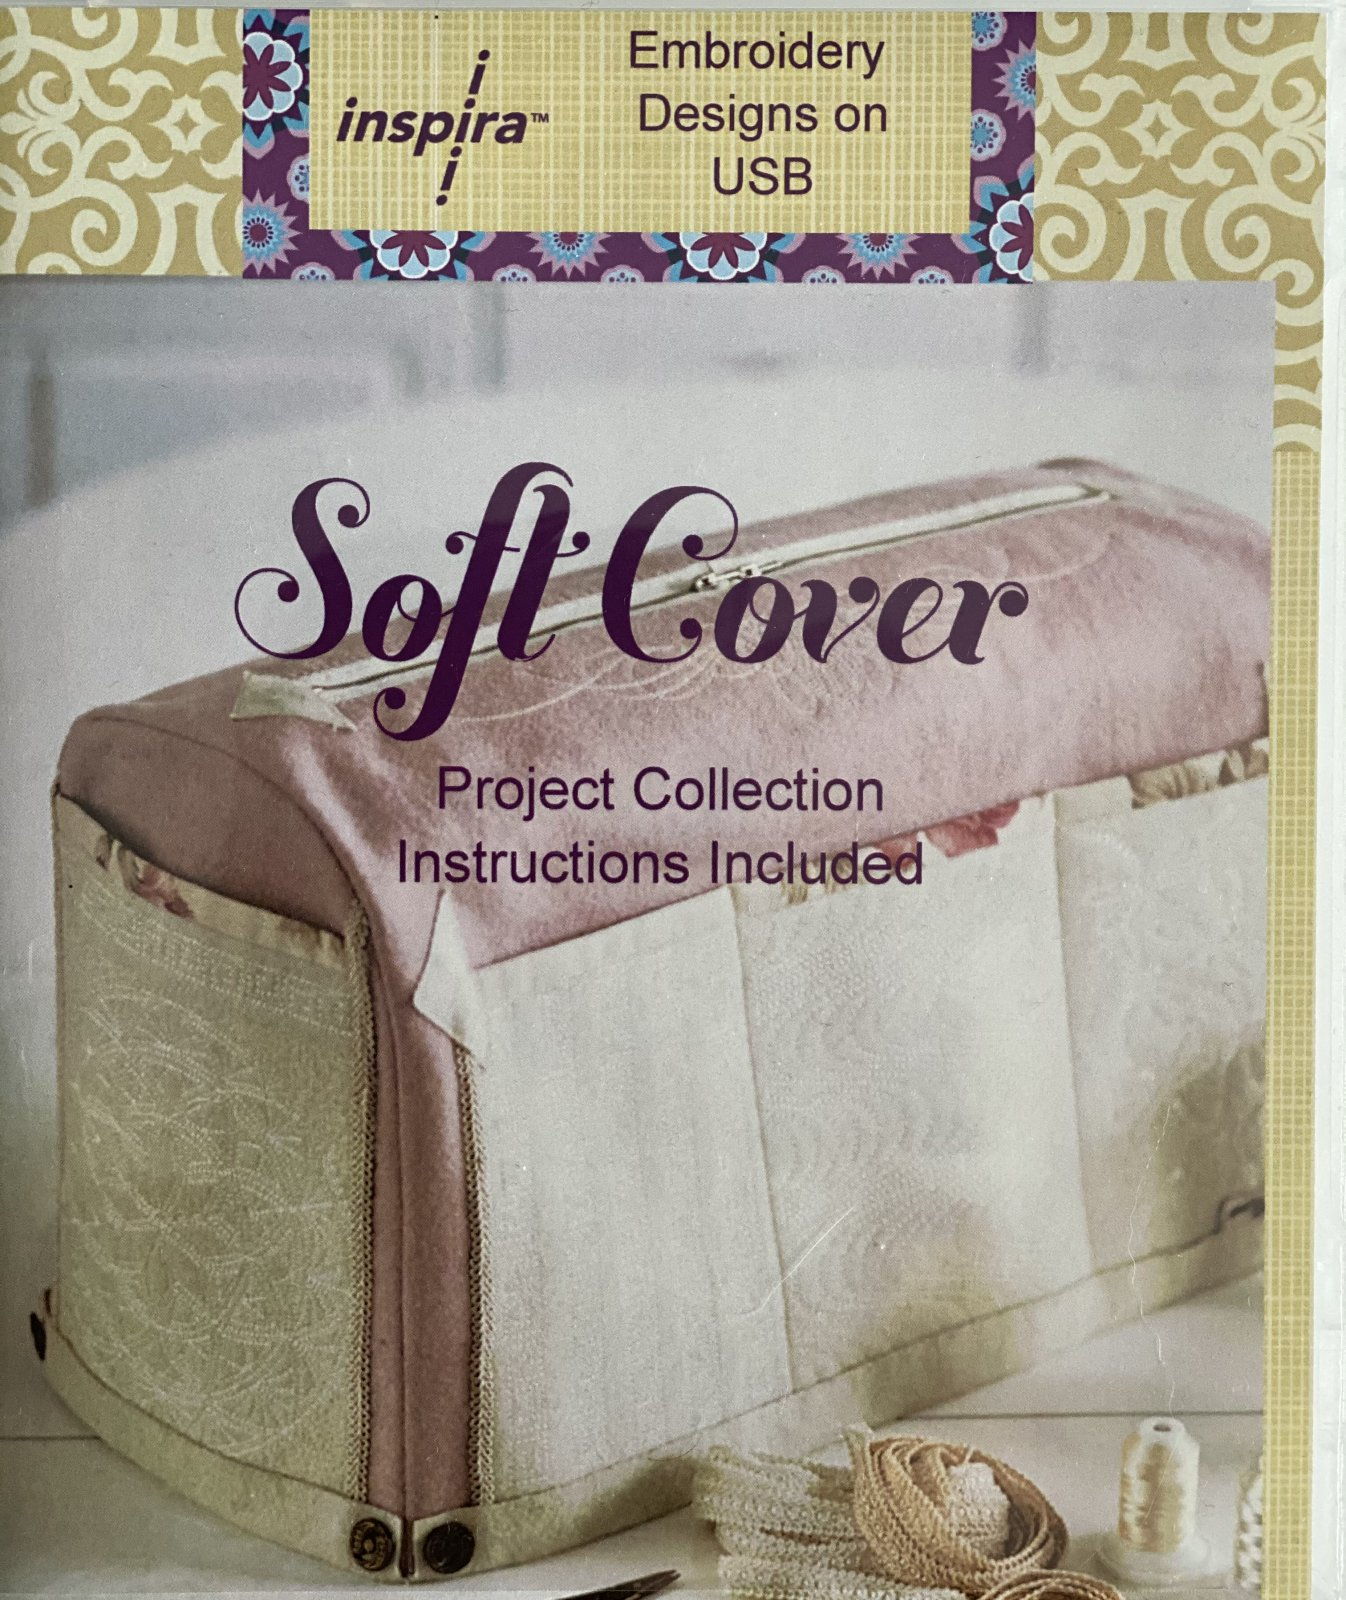 Soft Cover Project Collection USB